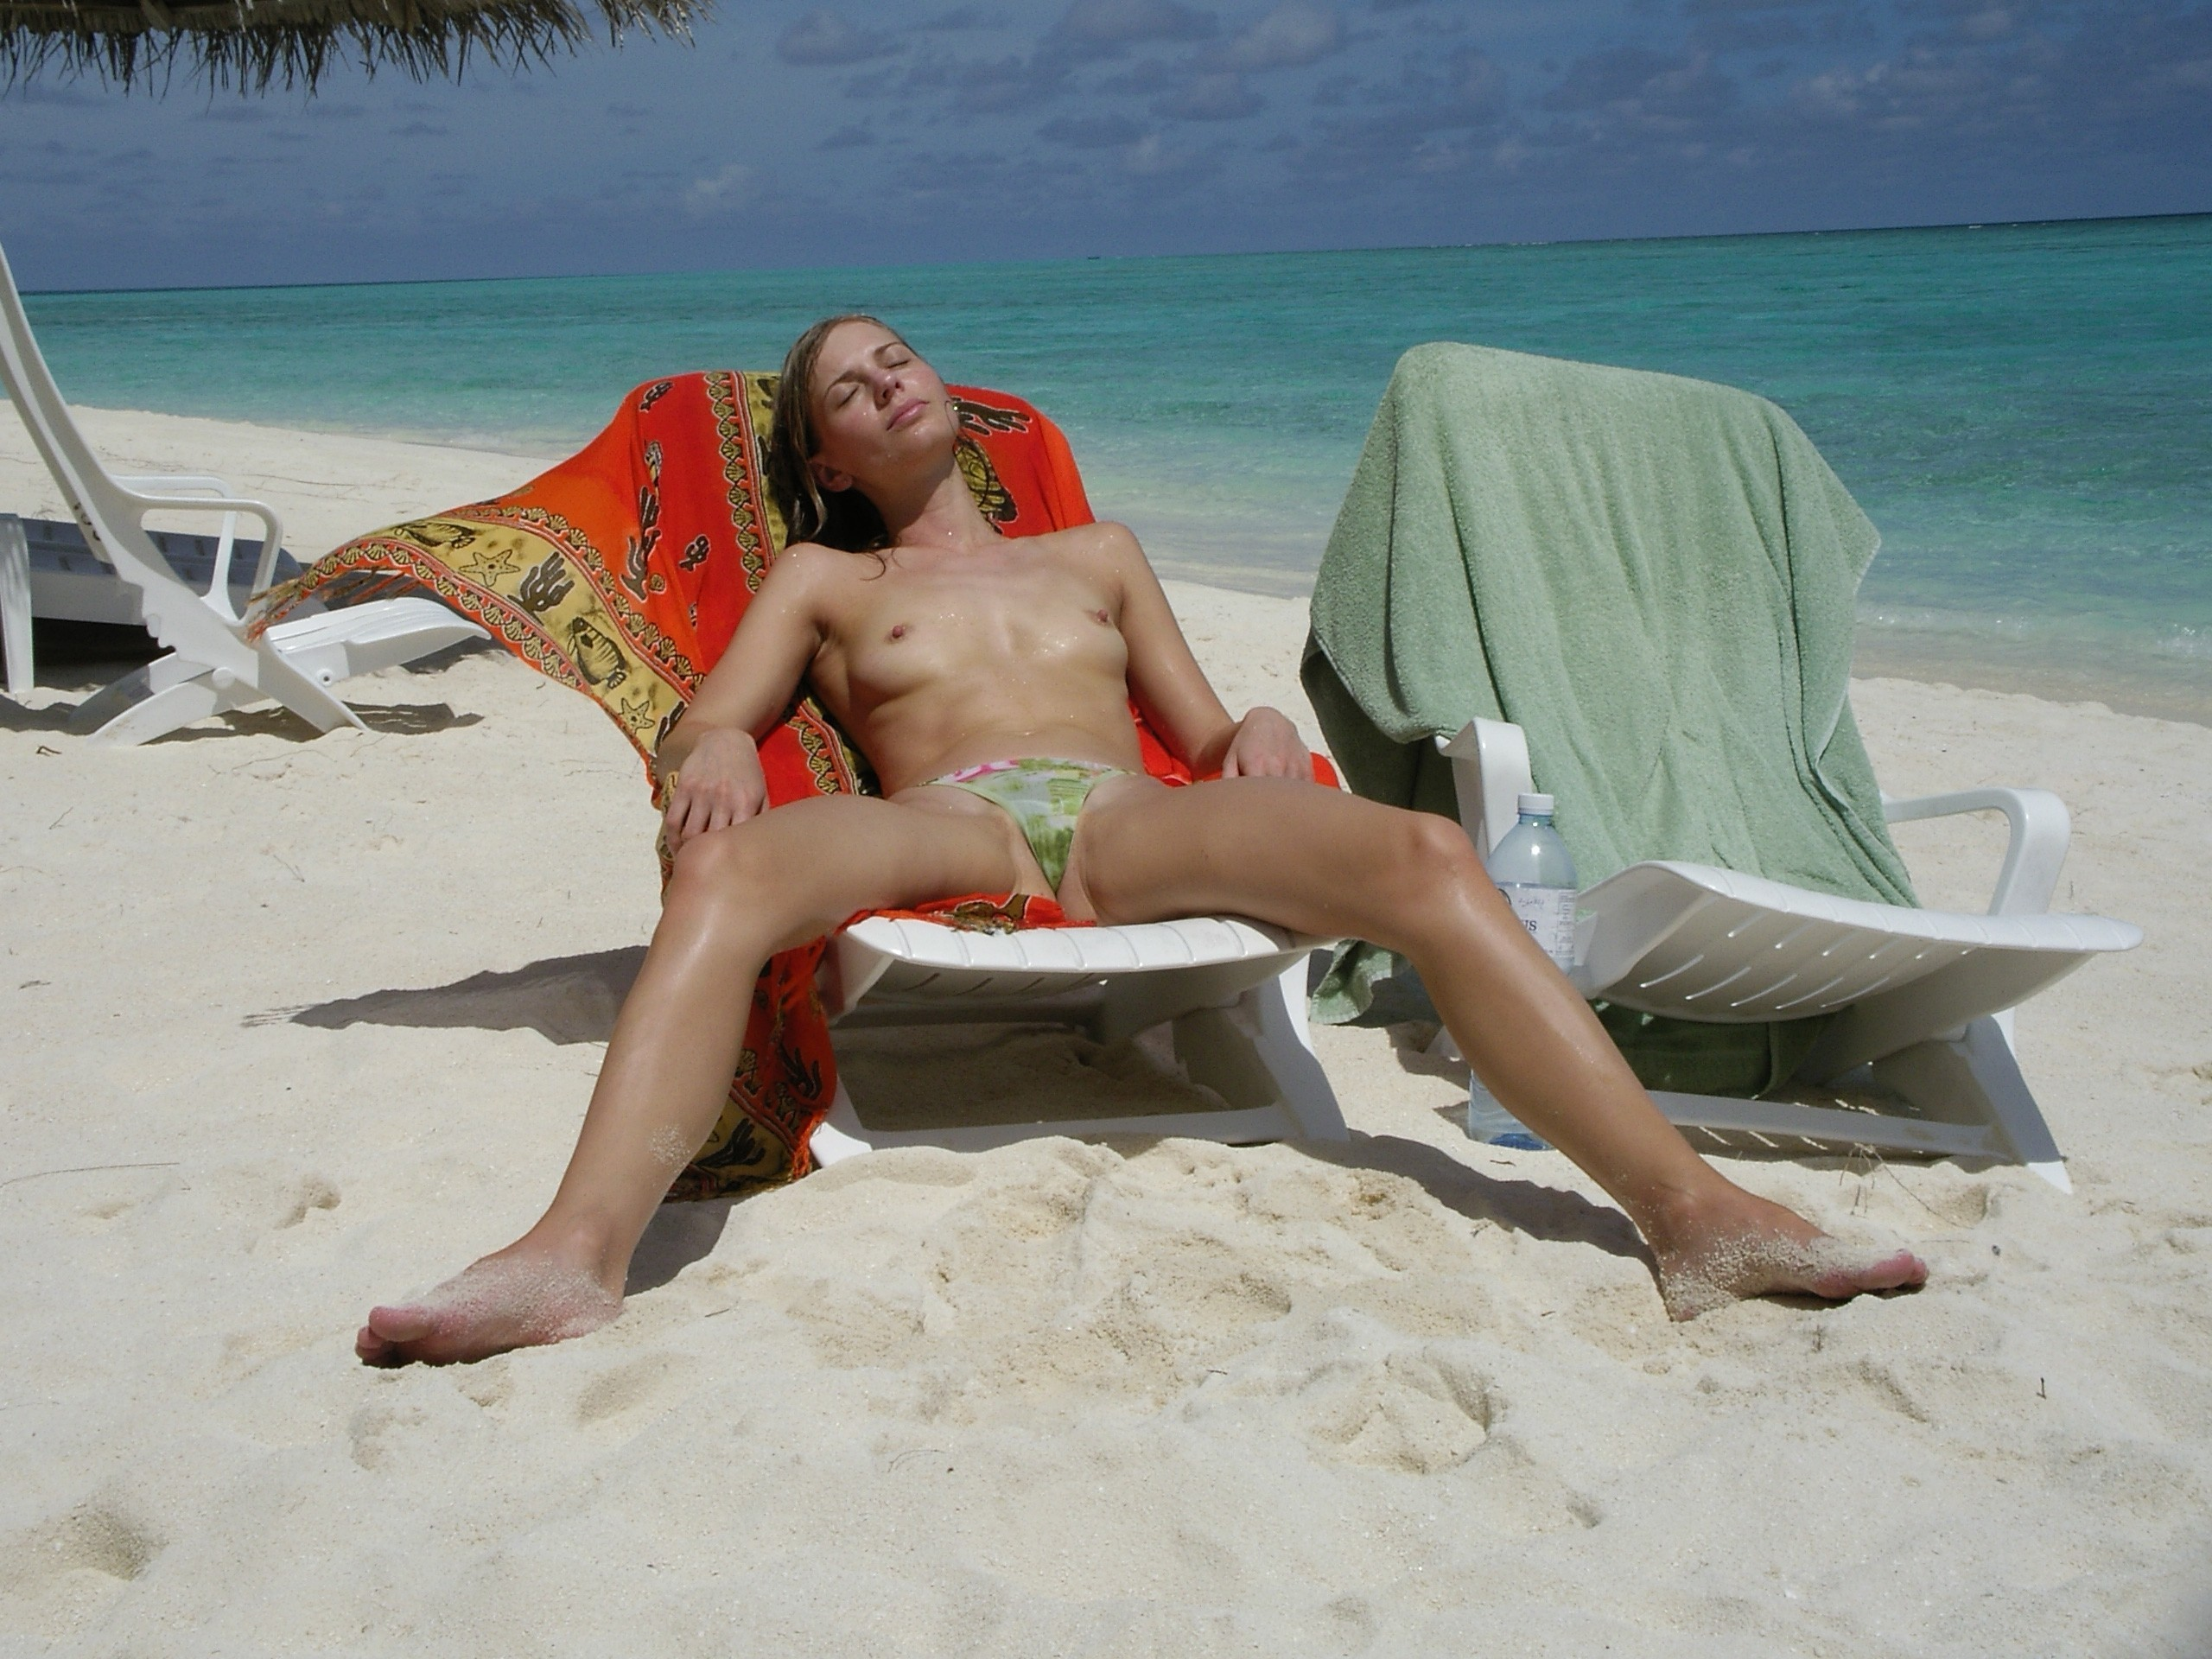 Taking a rest on the beach and sunbathing only in panties